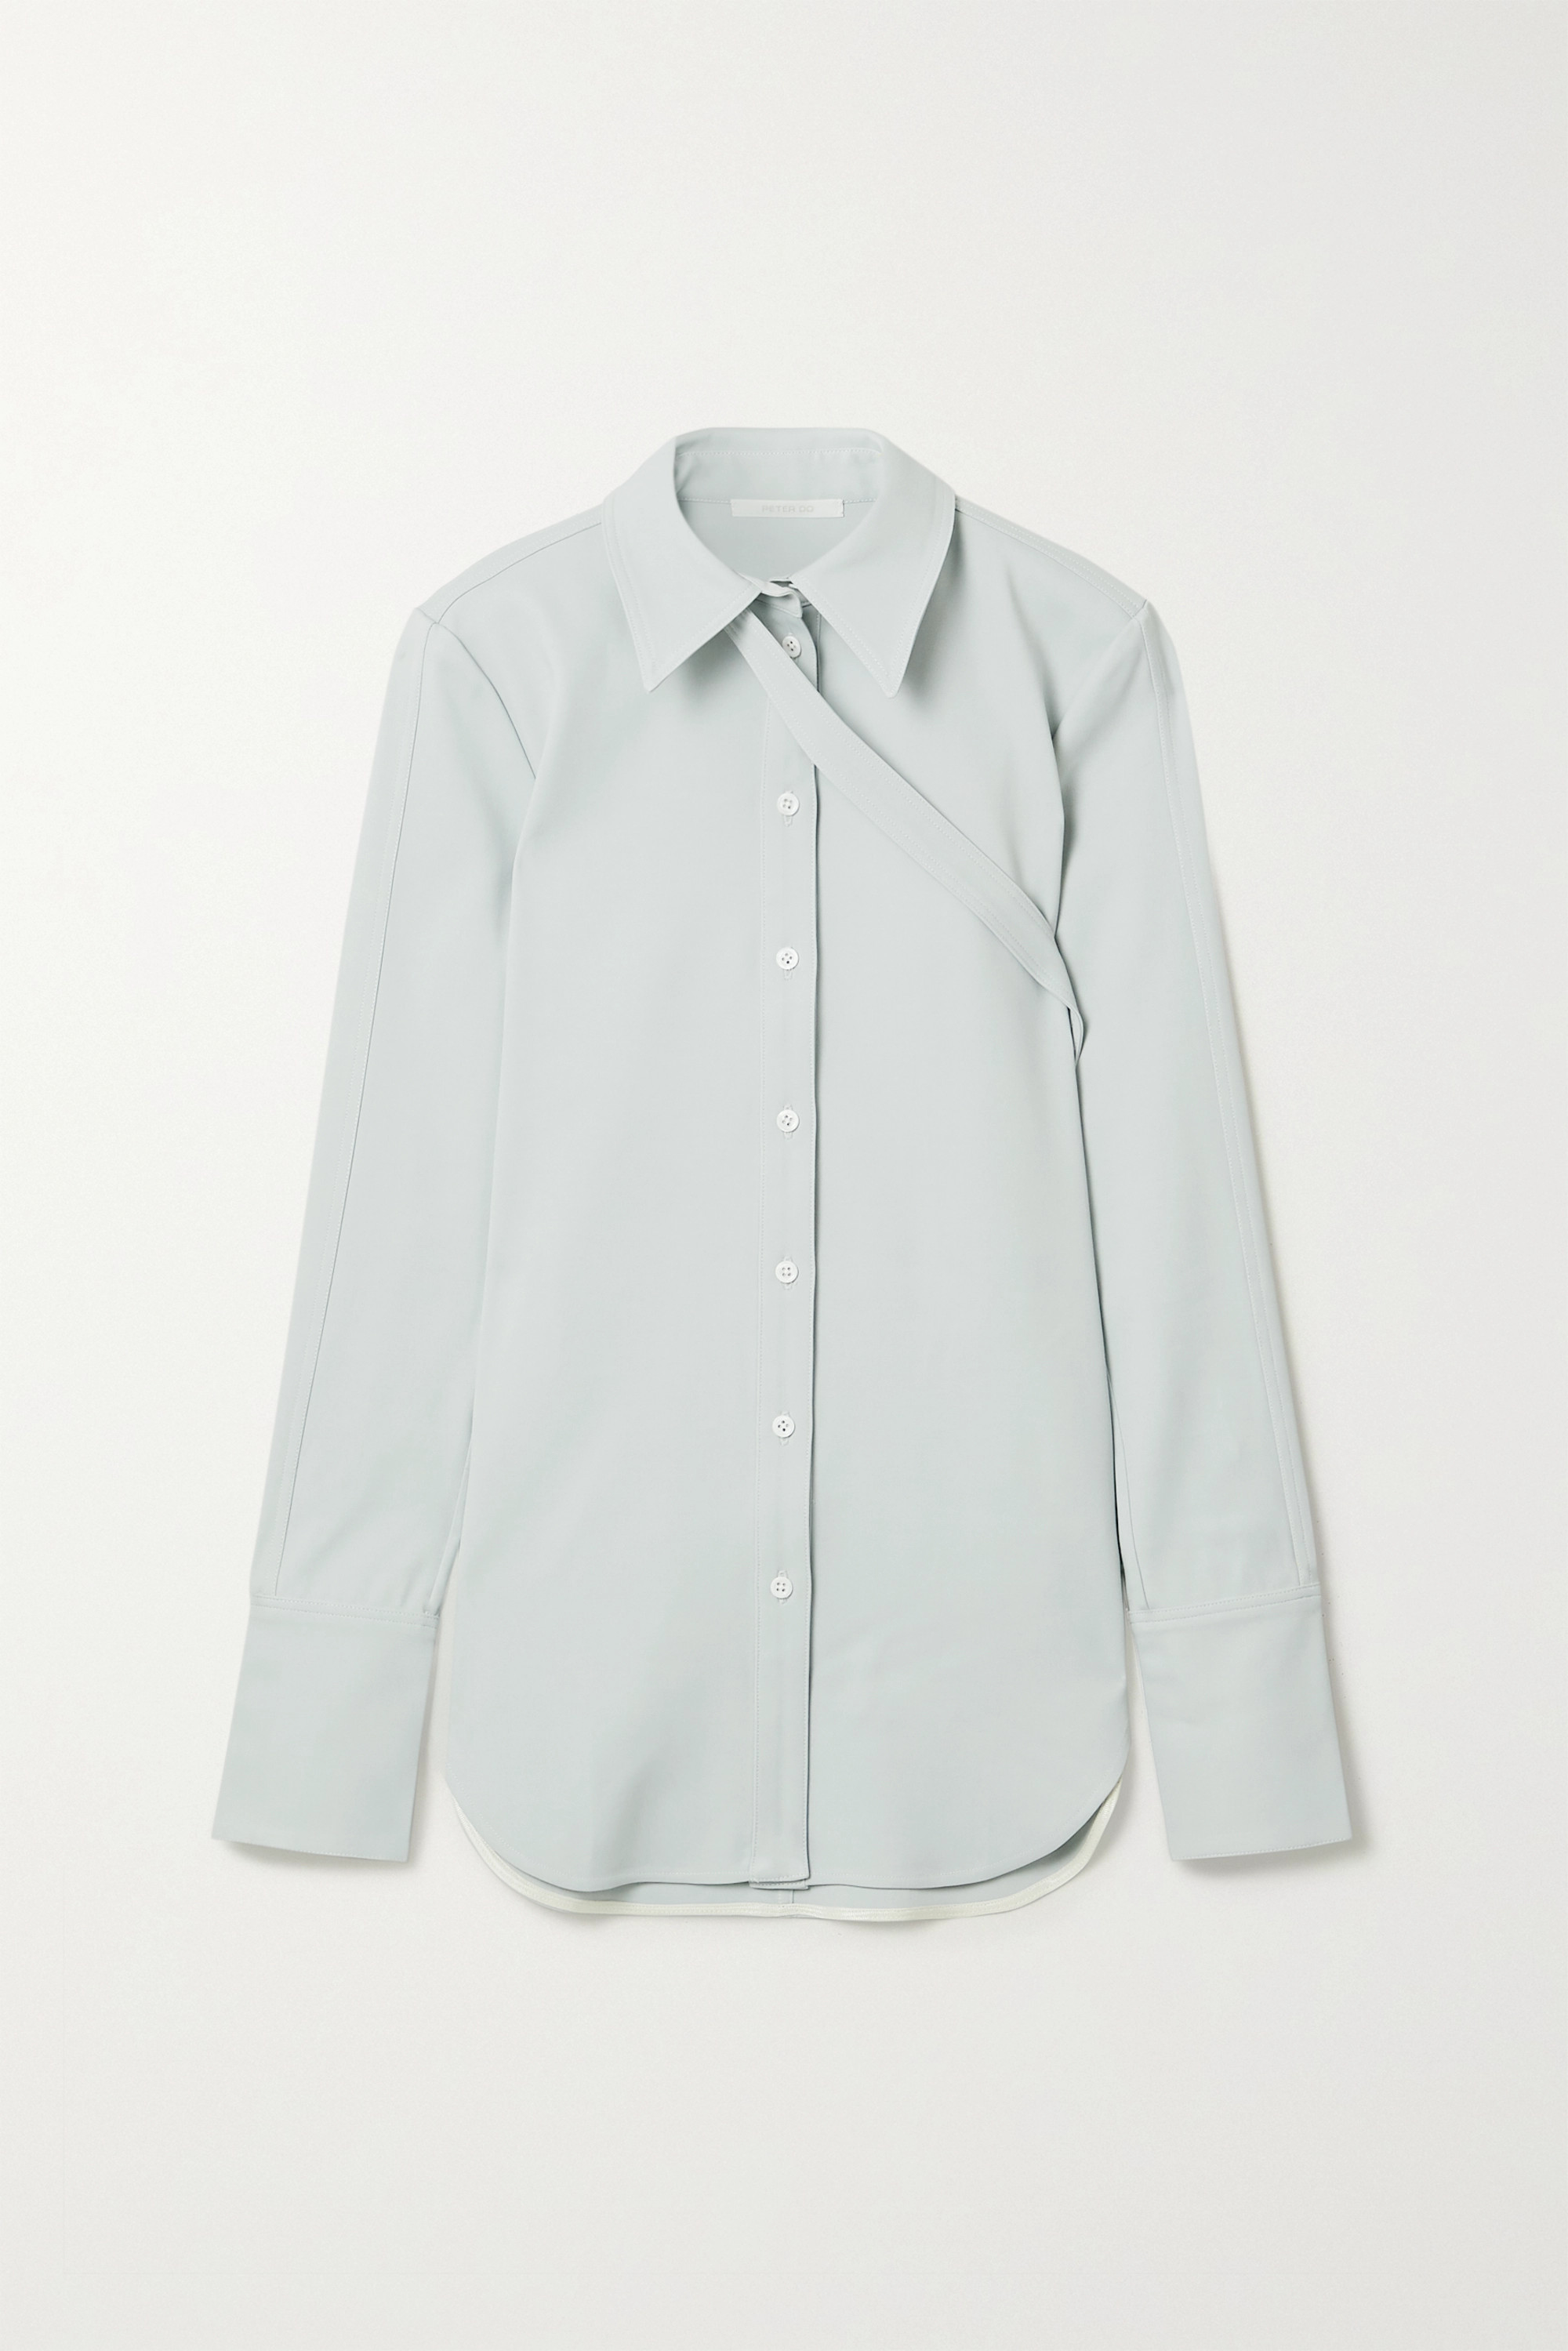 Peter Do Buckled stretch-crepe shirt